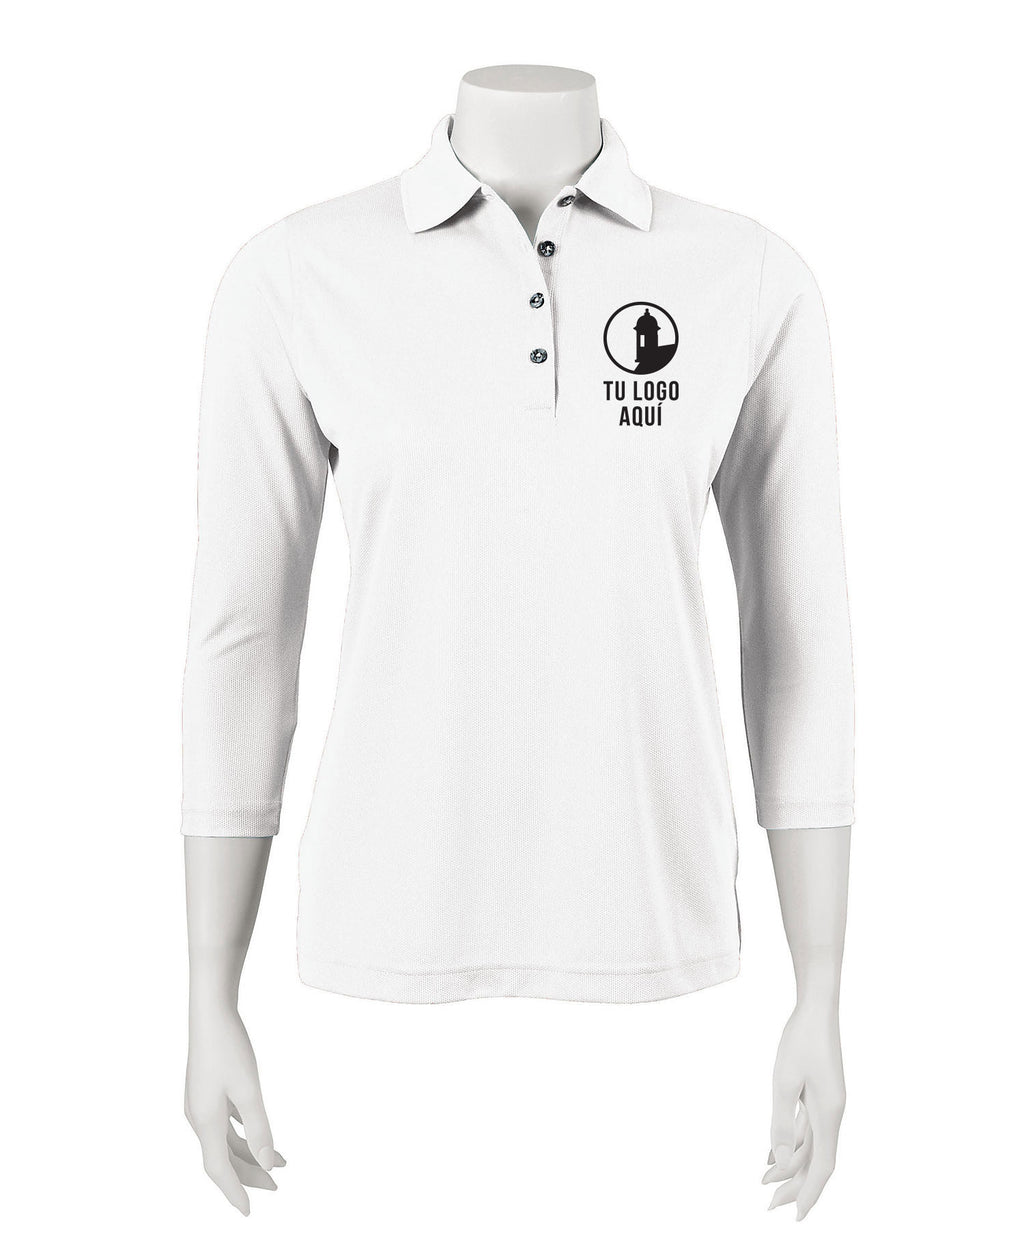 Women's 3/4 Sleeve Polo